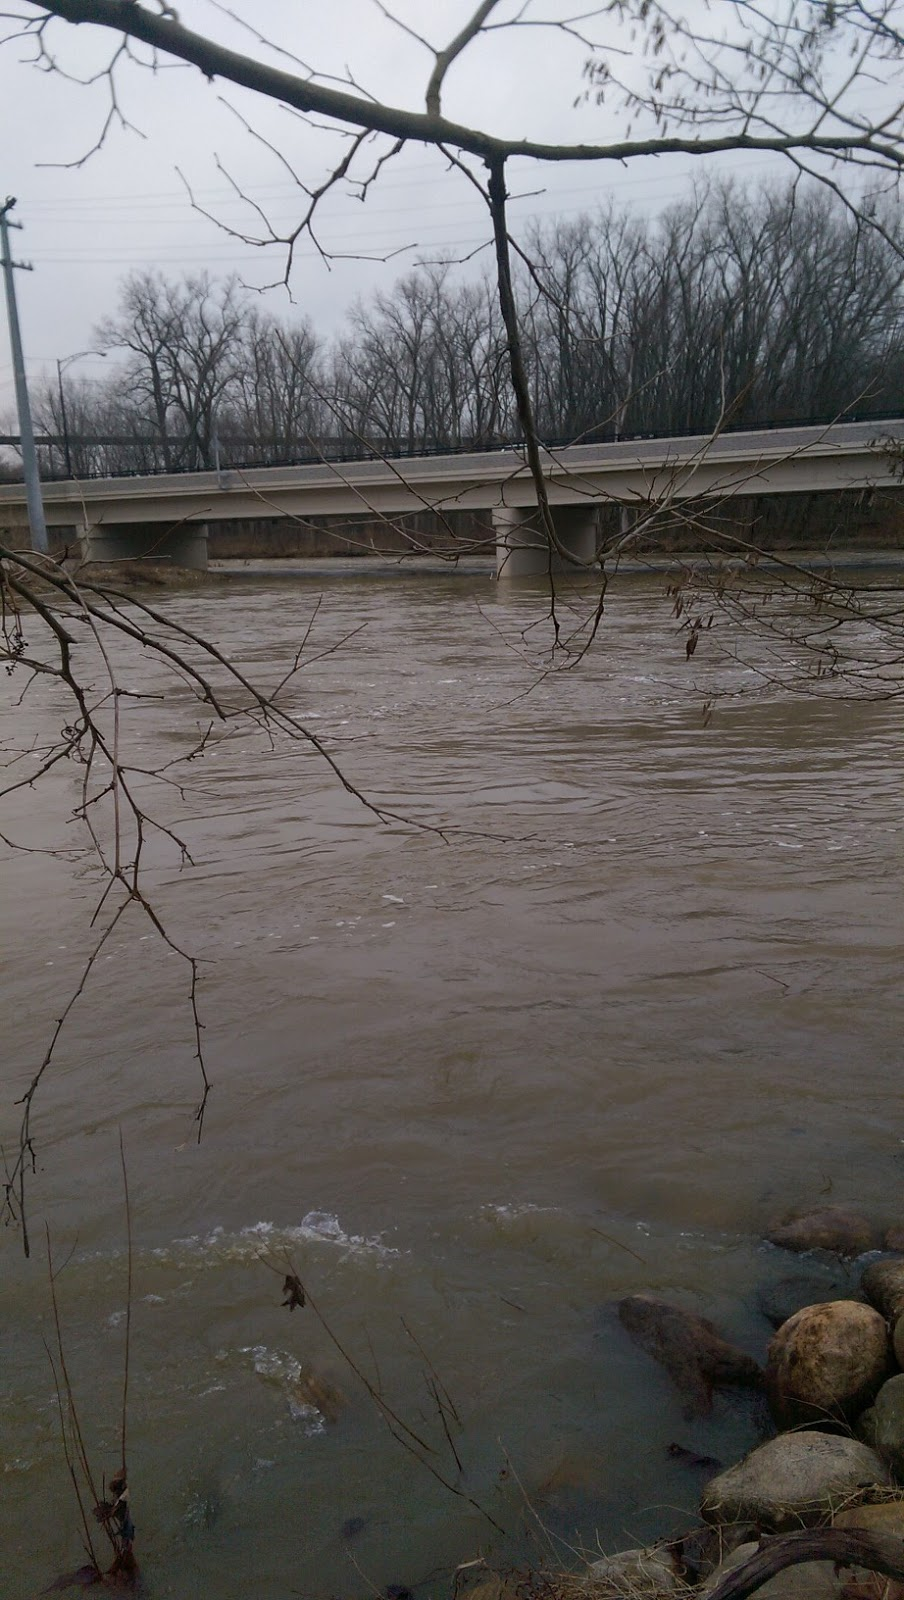 Lake metroparks fishing report grand river is high and muddy for Grand river fishing